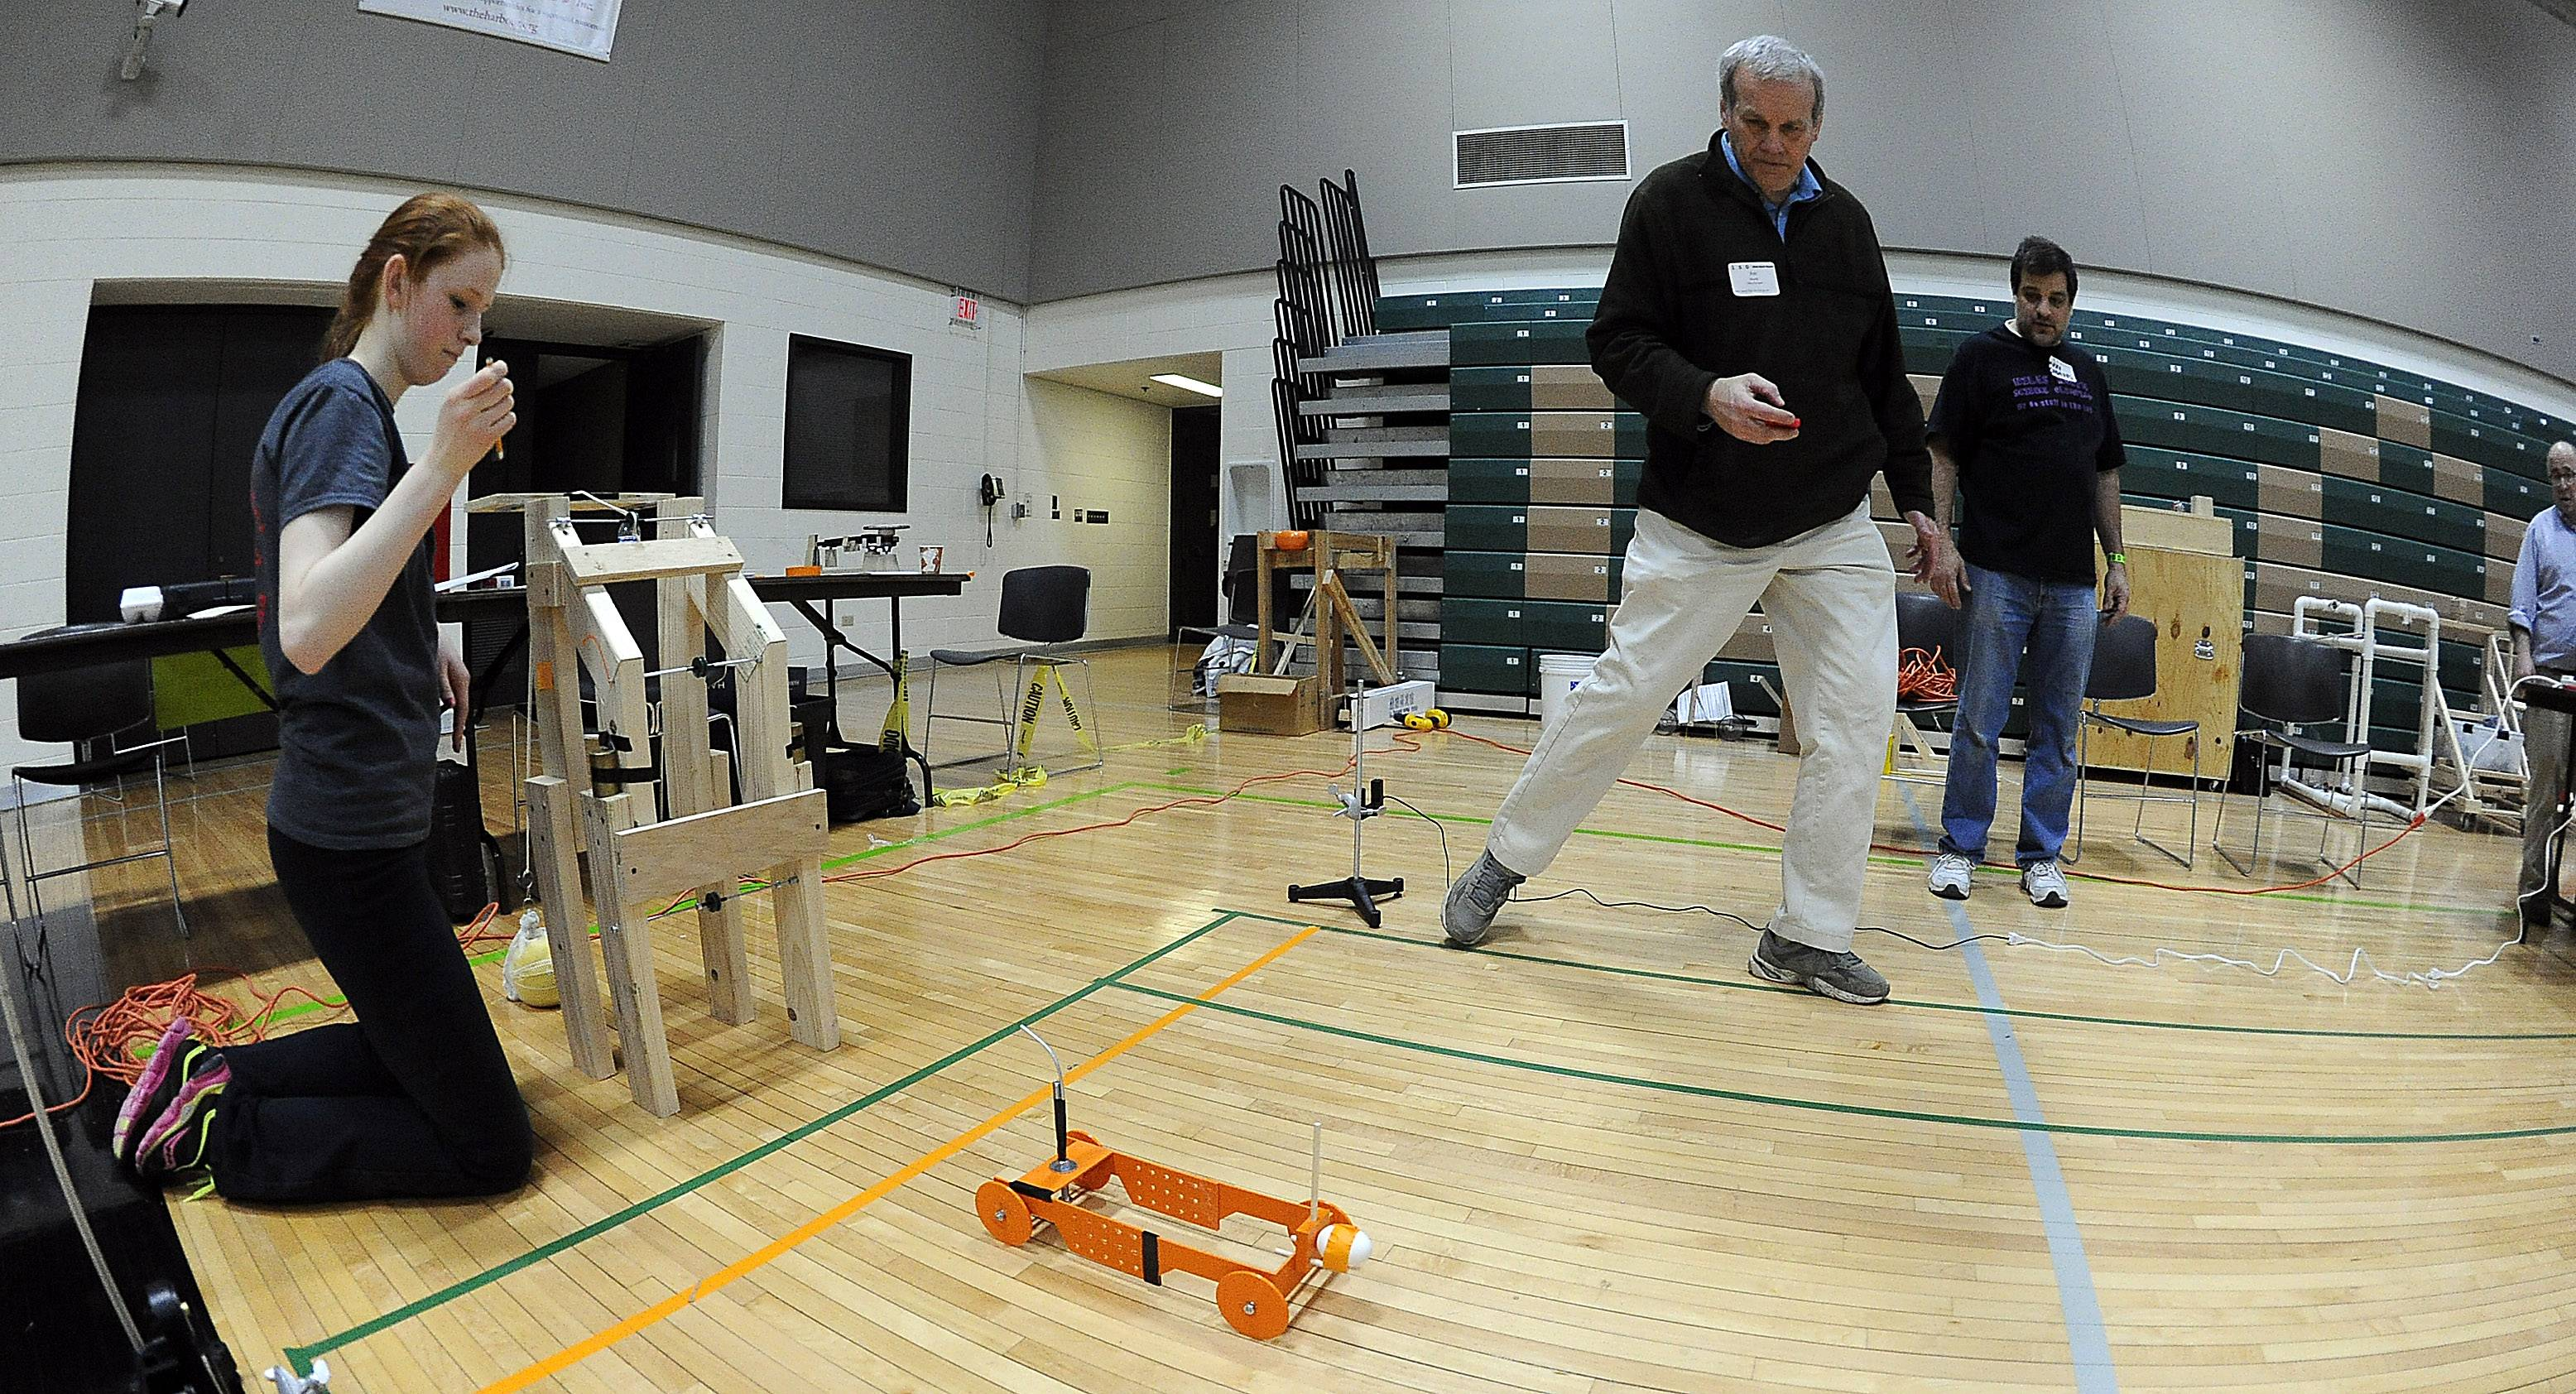 Kiera Gavin of Palatine High School demonstrates her science project to timer Joe Hanafee in the Scrambler event Saturday at the Science Olympiad at Oakton Community College in Des Plaines. Winners in the regional event will move on to state.